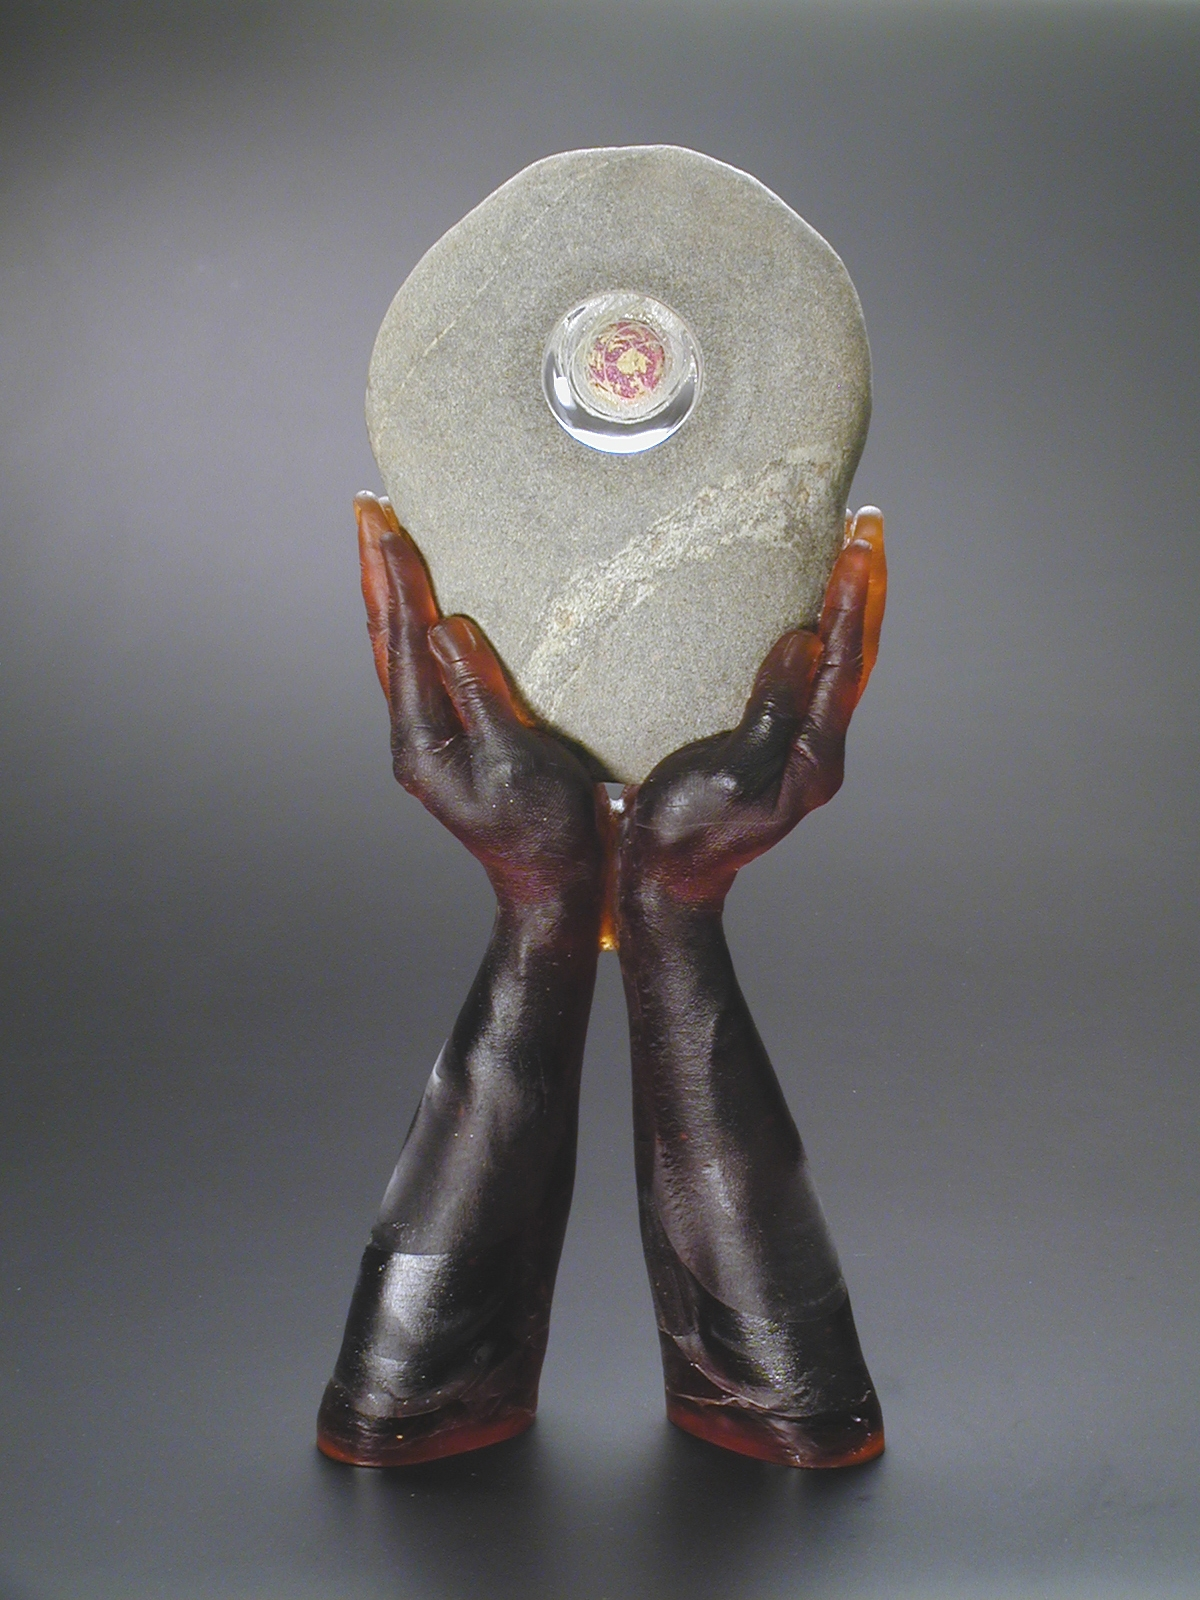 Sculpture of hands cast in red brown glass holding a grey and white rock with a portal in it.